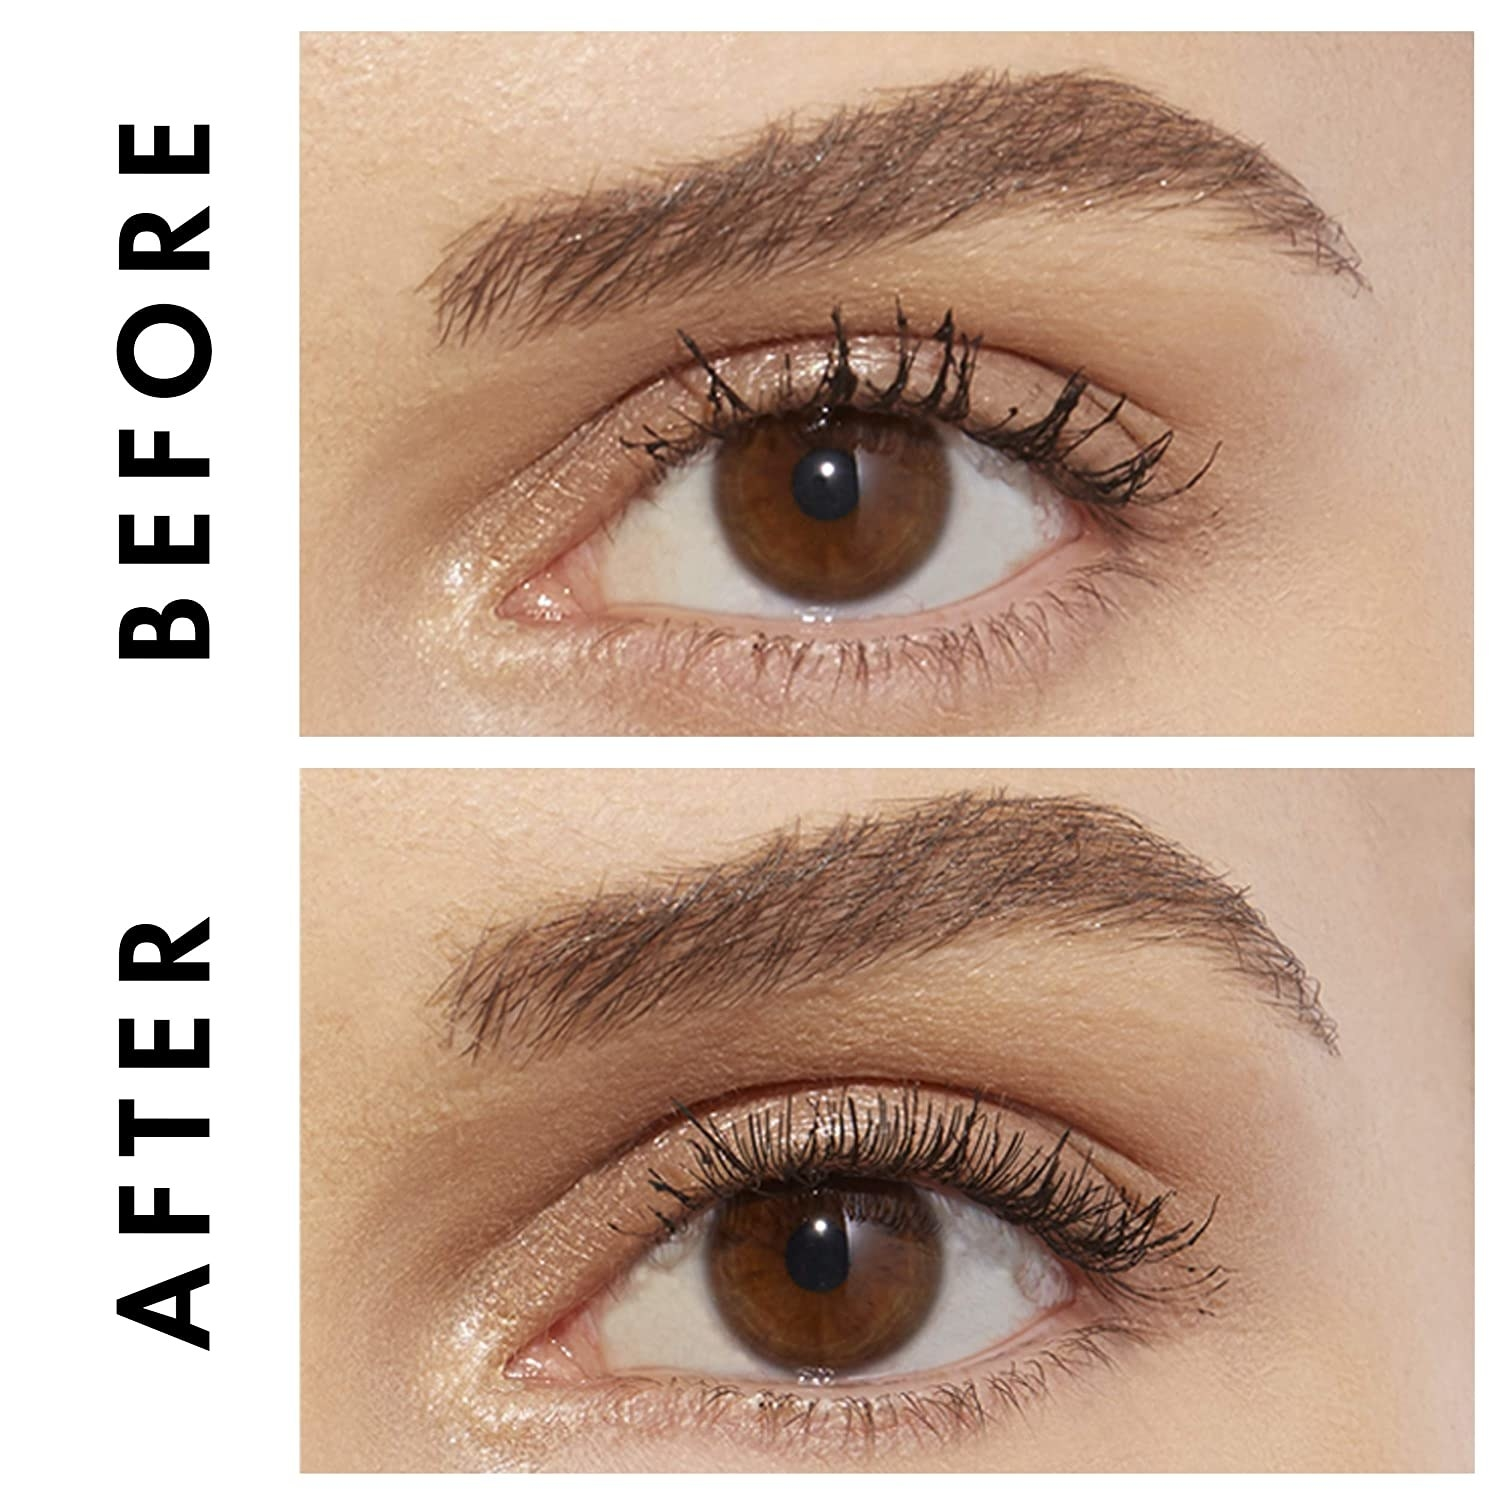 Before and after showing the comb brushed out clumps in model's lashes